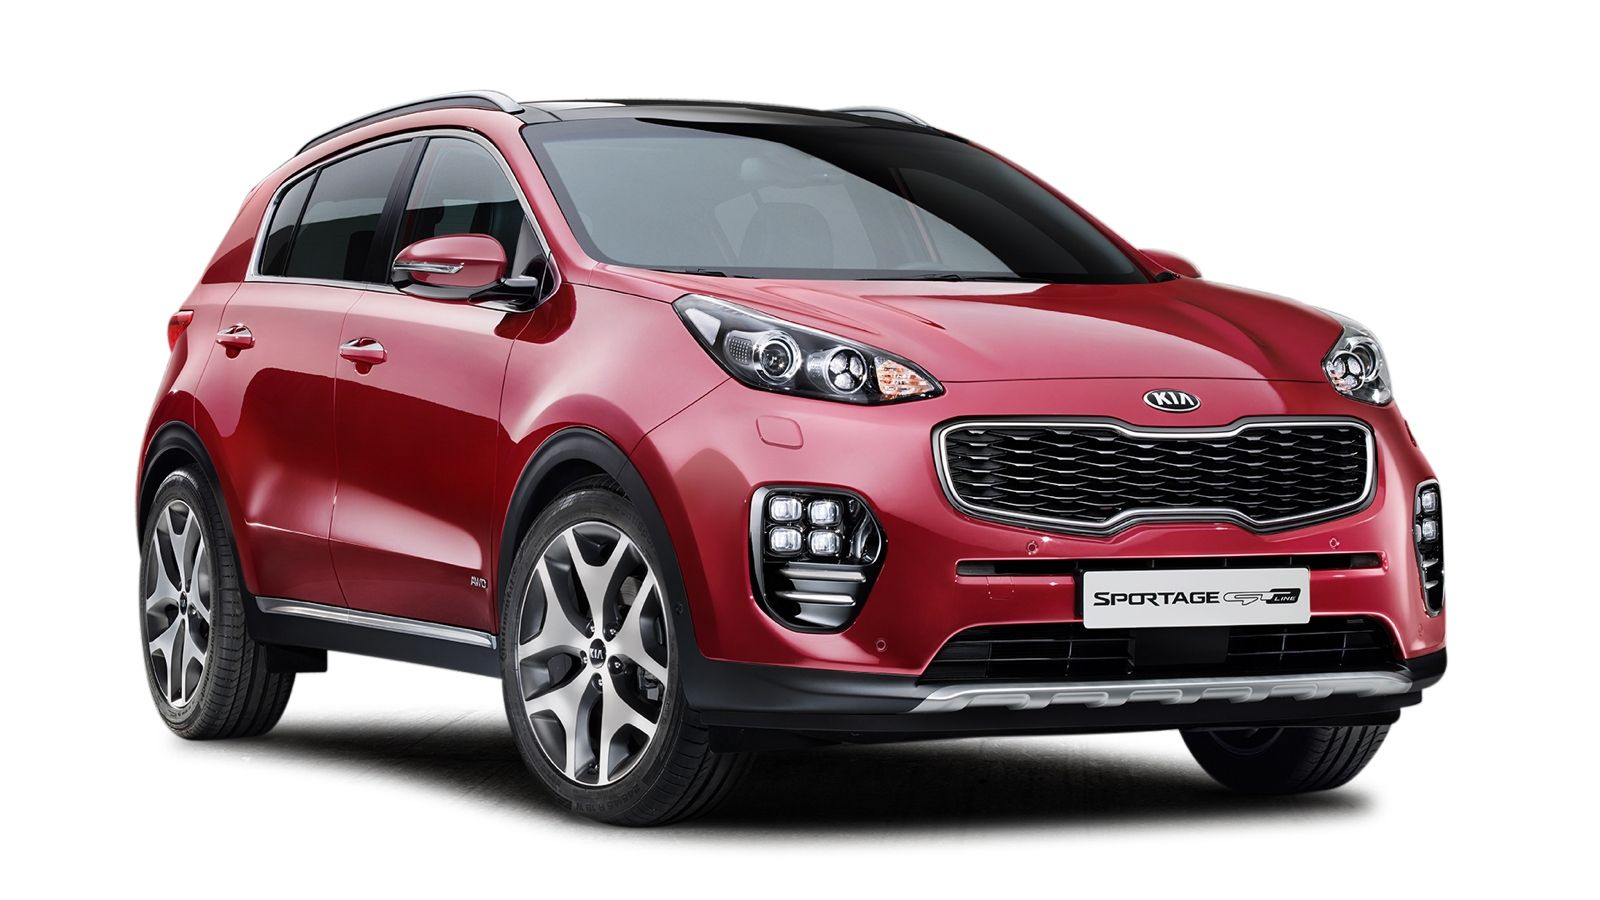 Kia Jeep 2020 Rumors And Price In 2020 Jeep Kia Kia Sportage